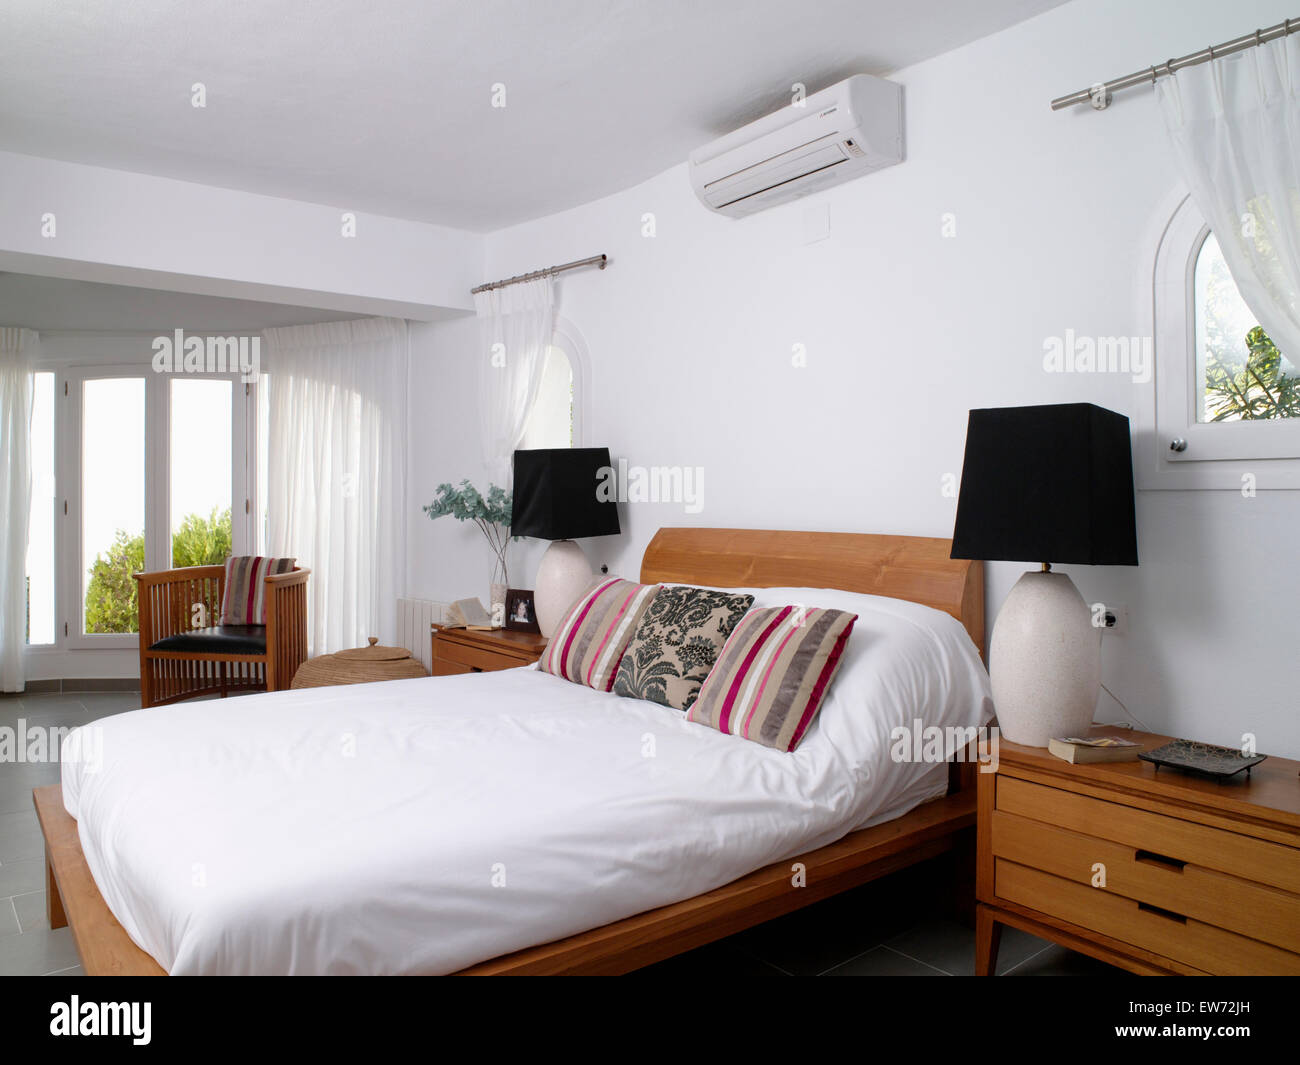 Small air-conditioning unit above bed with white duvet and striped ...